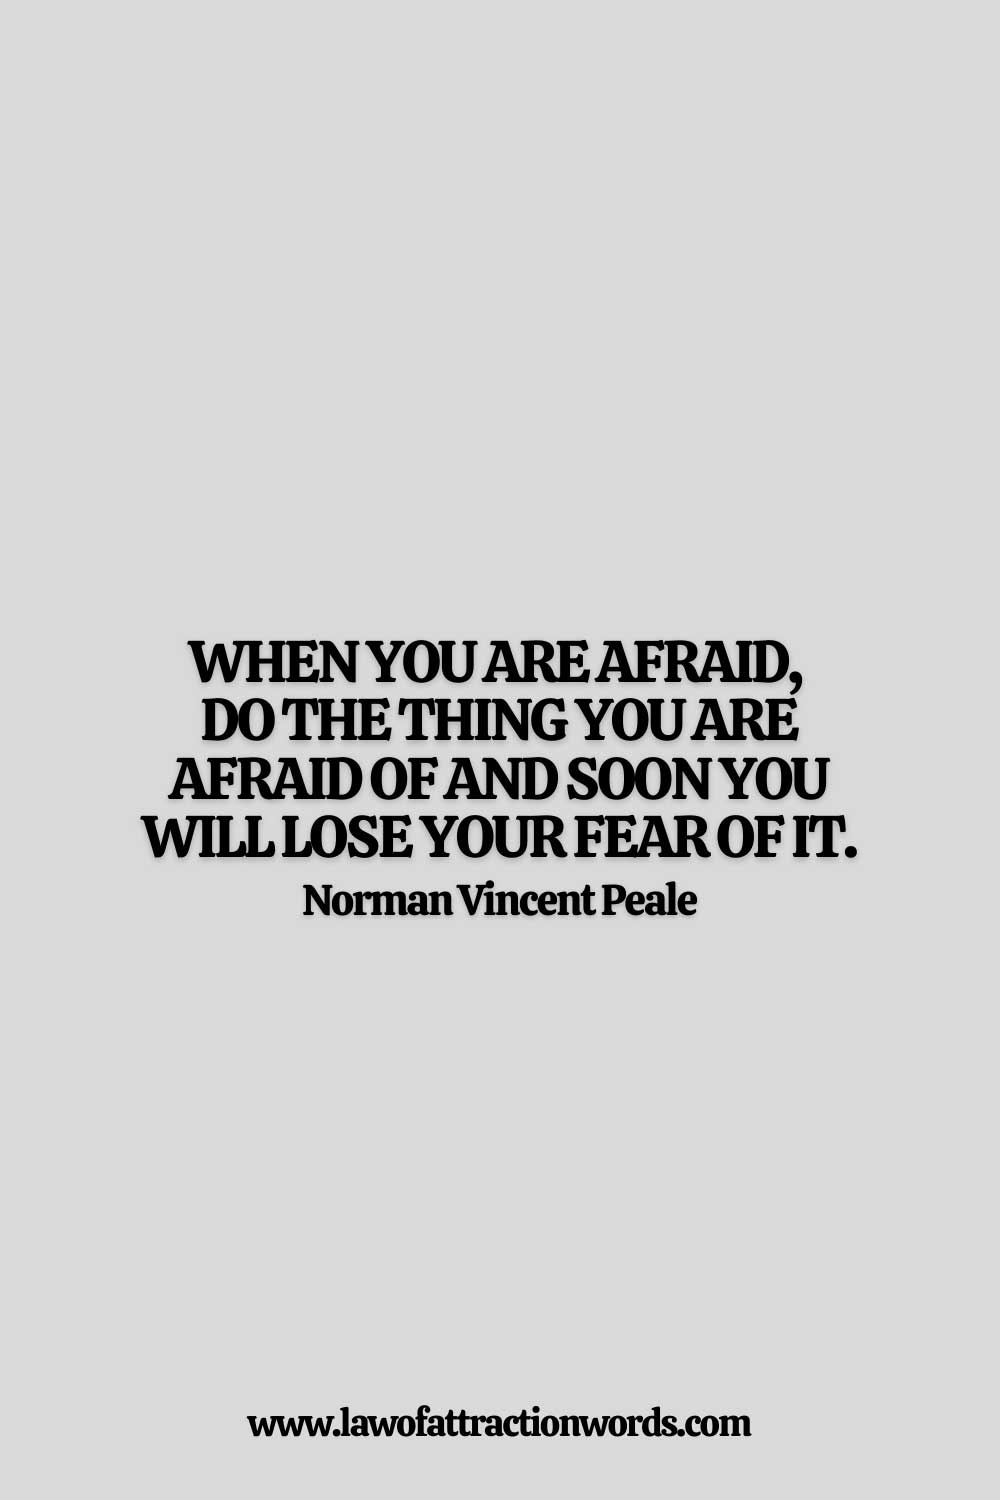 Motivational Quotes To Overcome Fear and Anxiety